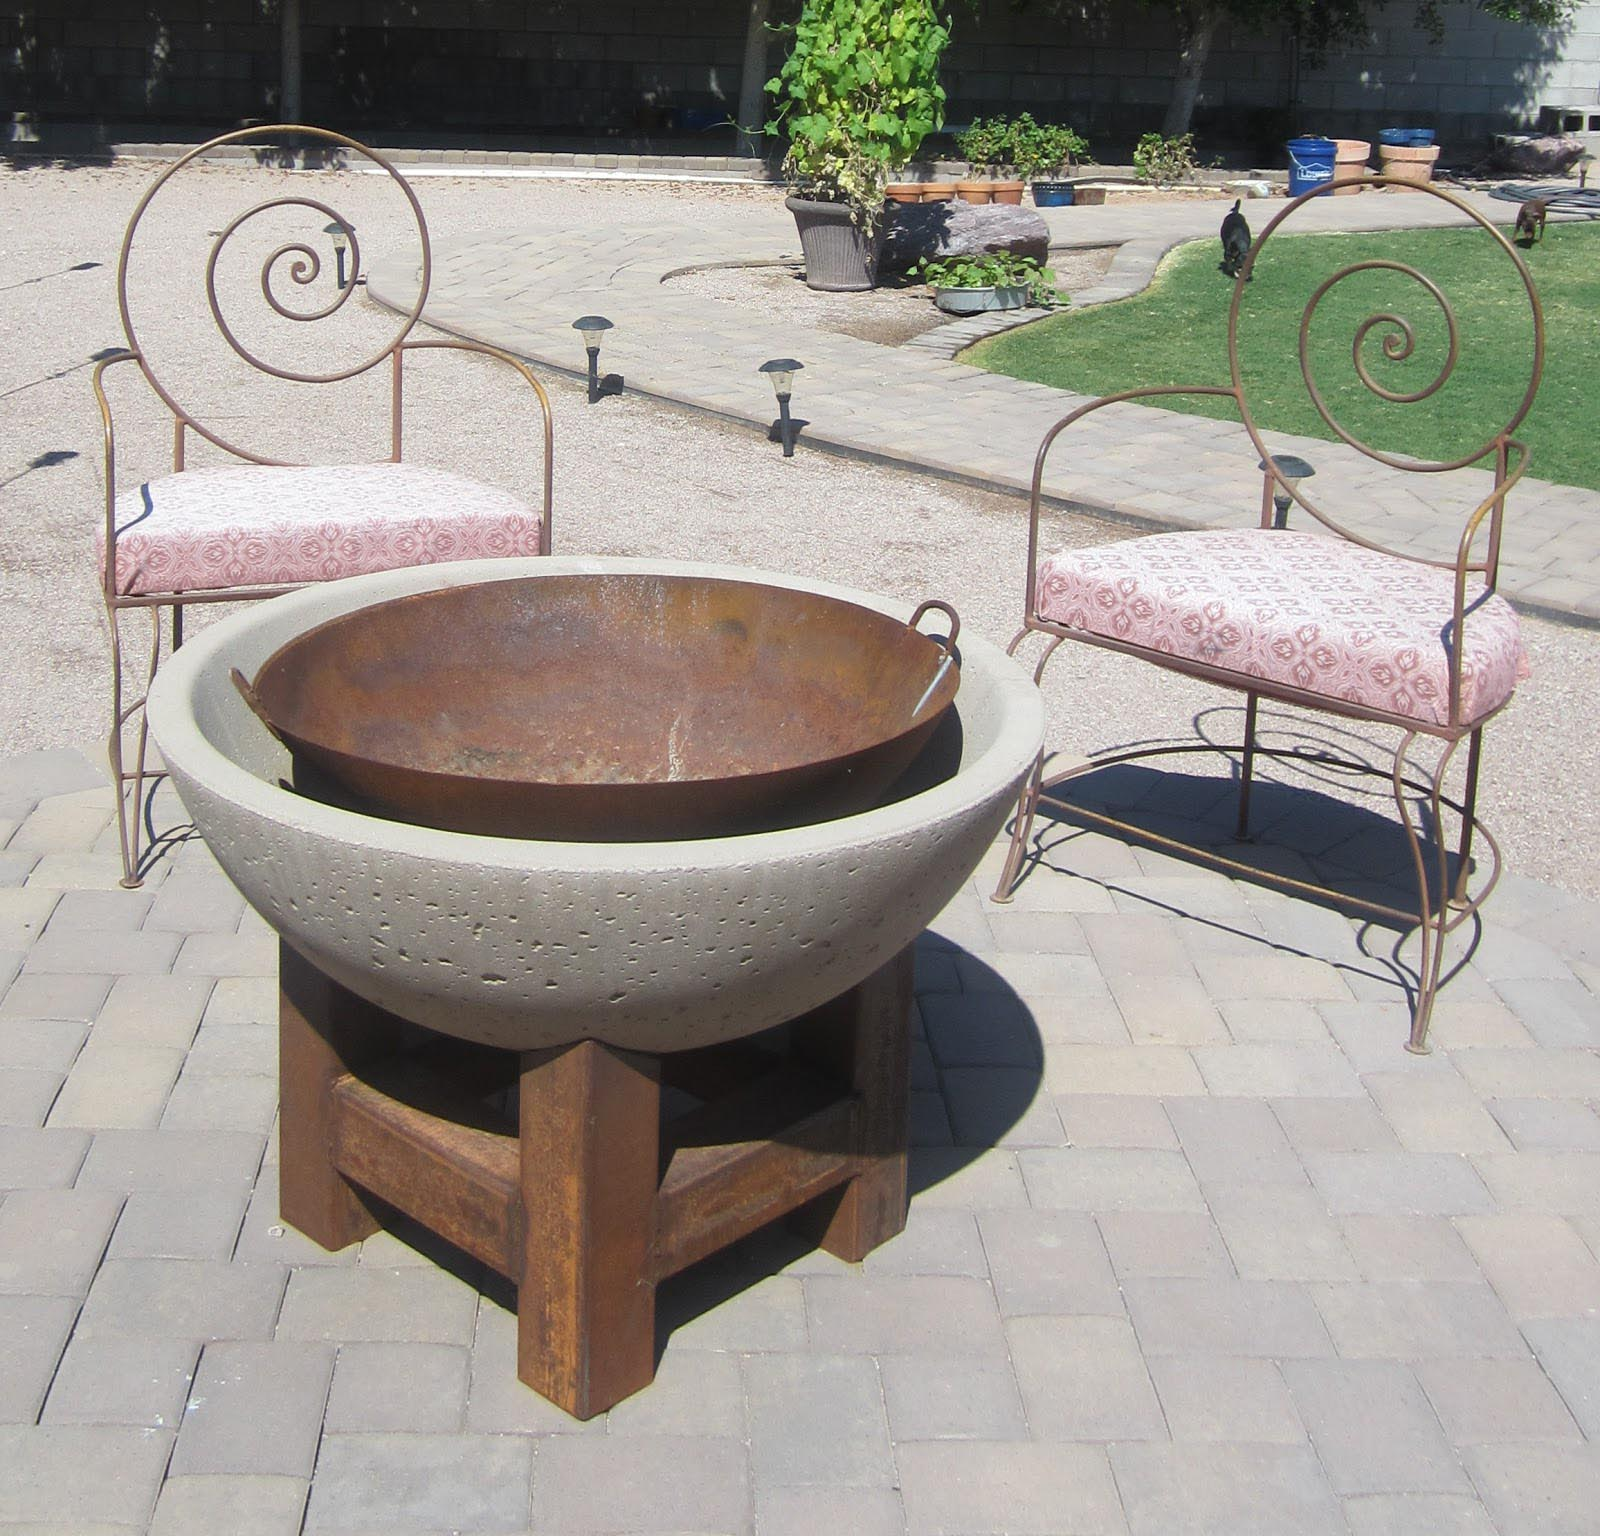 Stone bowl fire pit fire pit design ideas for Fire pit ideas